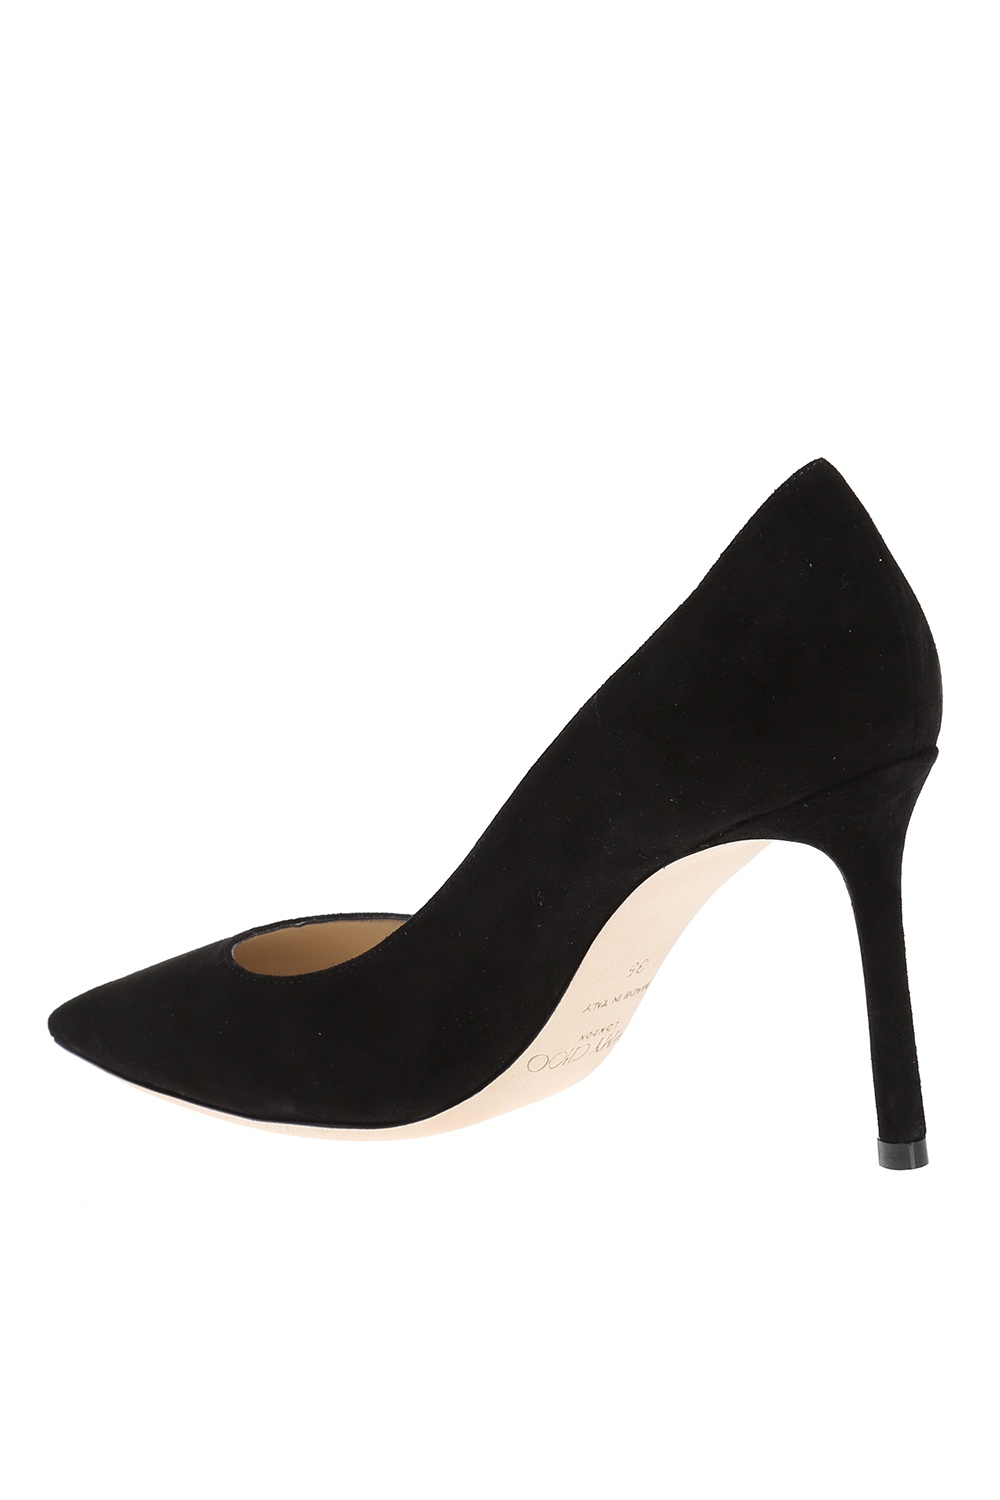 Jimmy Choo 'Romy' suede pumps